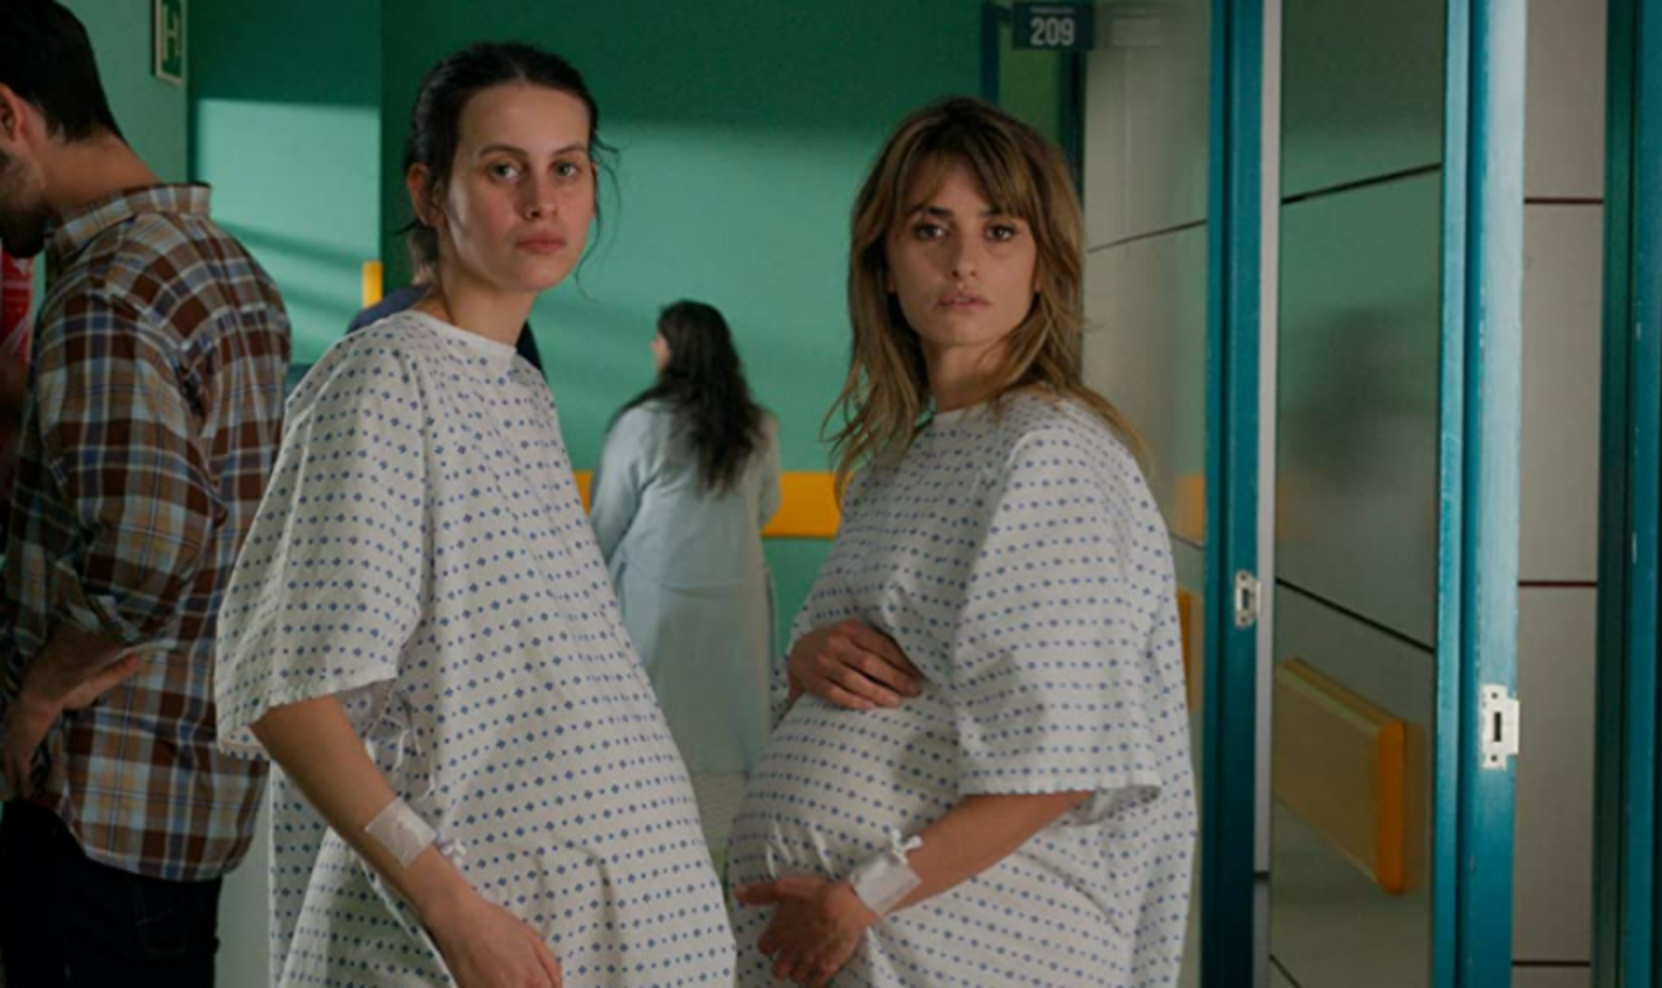 Two pregnant women, one in her forties and another about half her age, in a maternity ward.